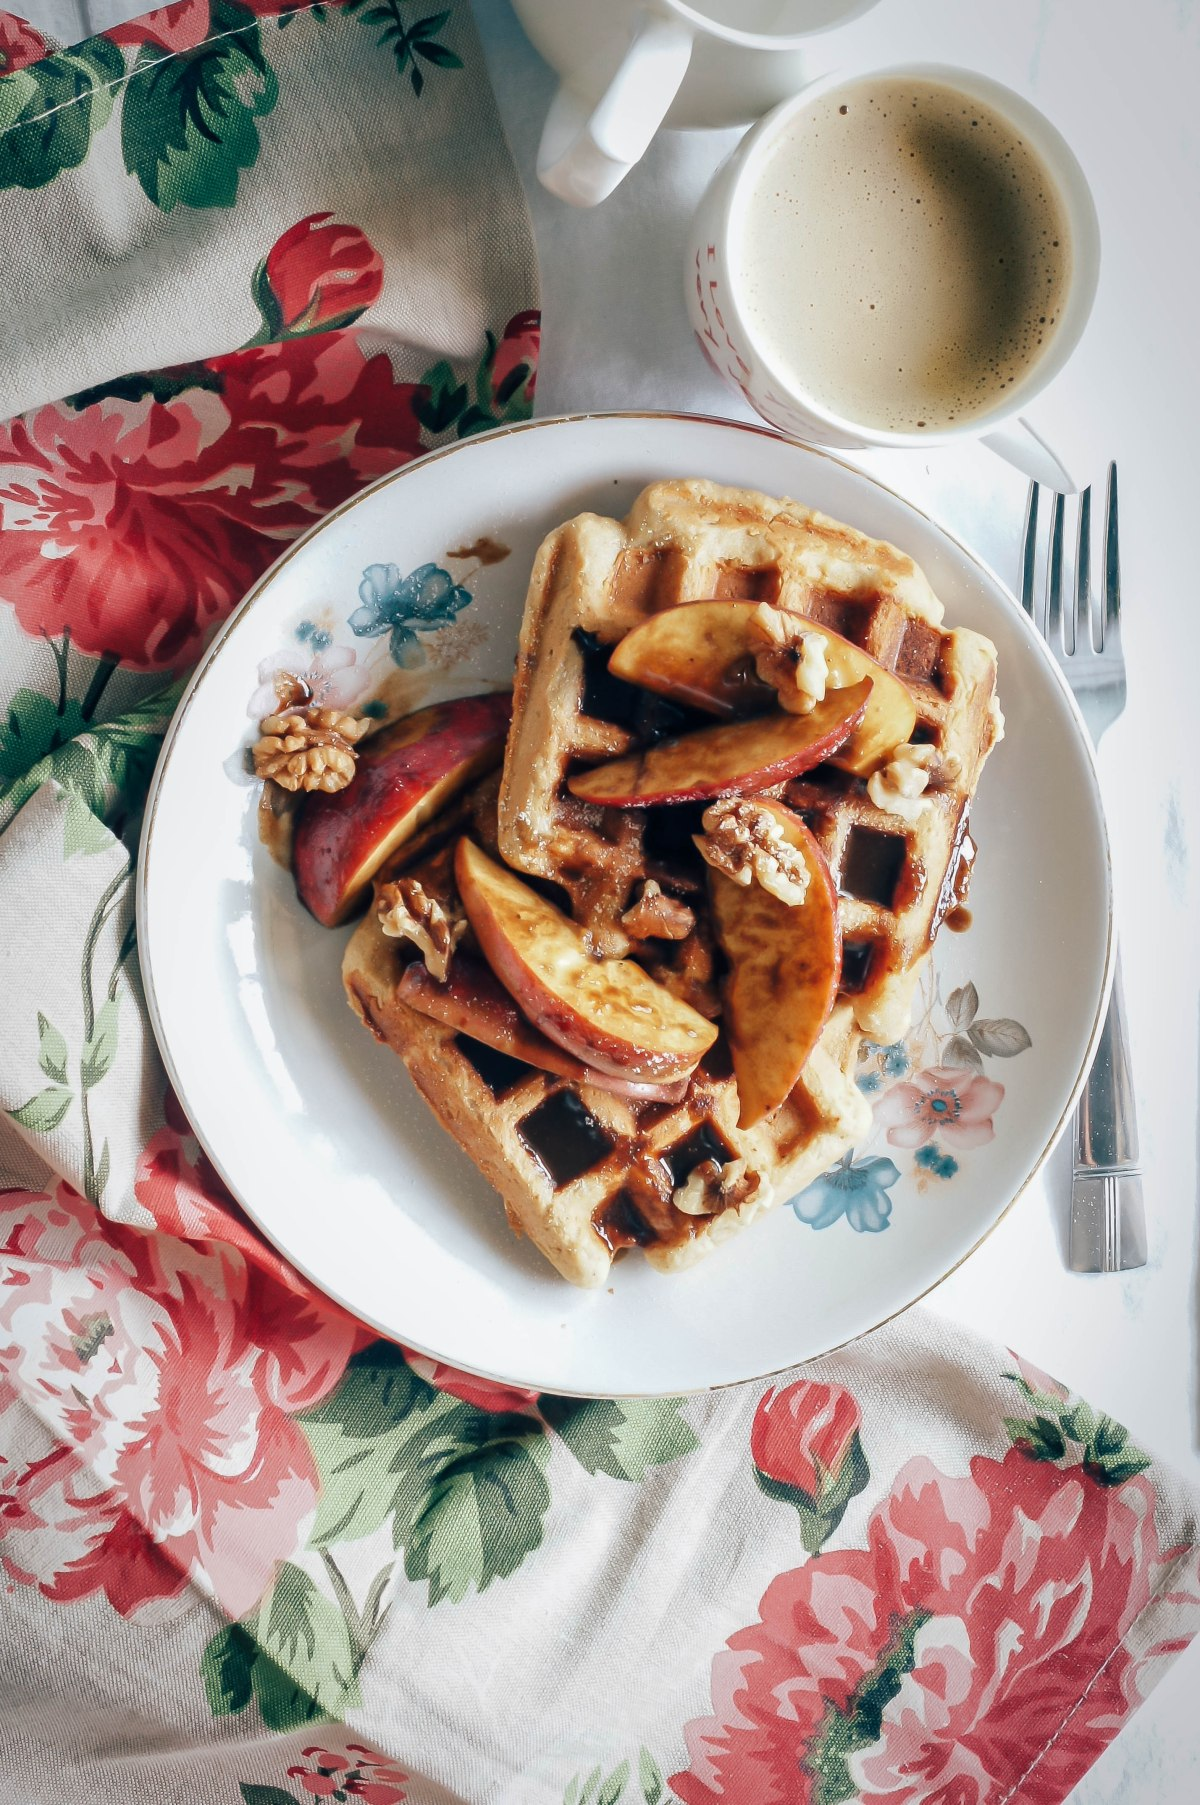 Whole wheat waffles with caramel poached apples and nuts